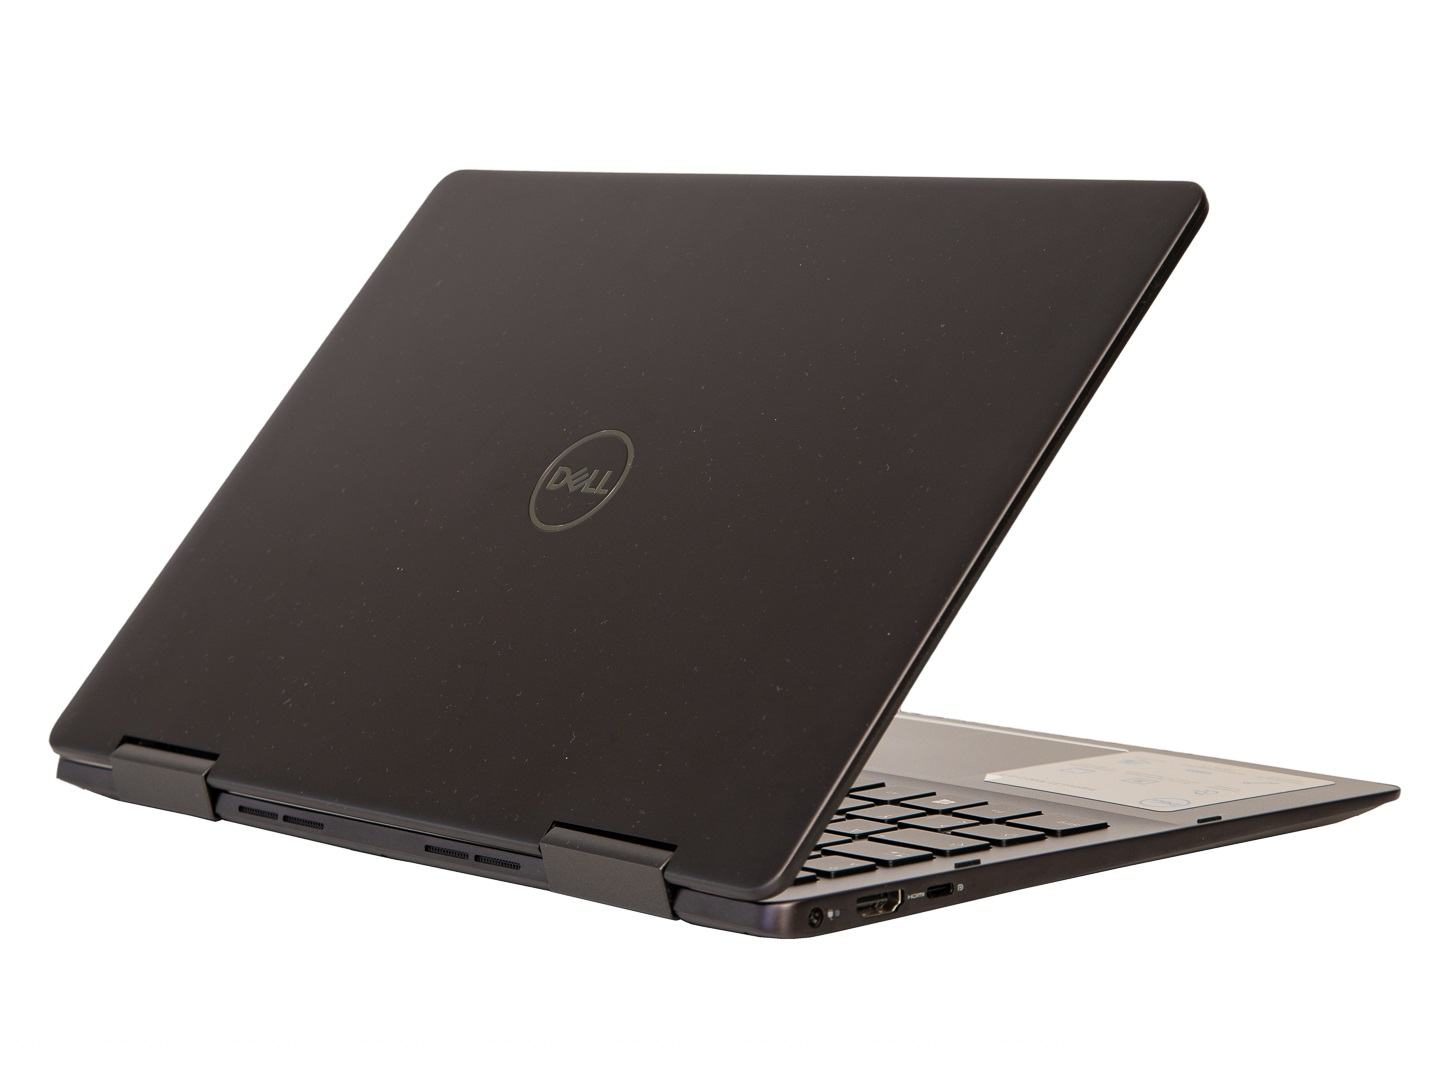 review Dell Inspiron 13 7386 2 in 1